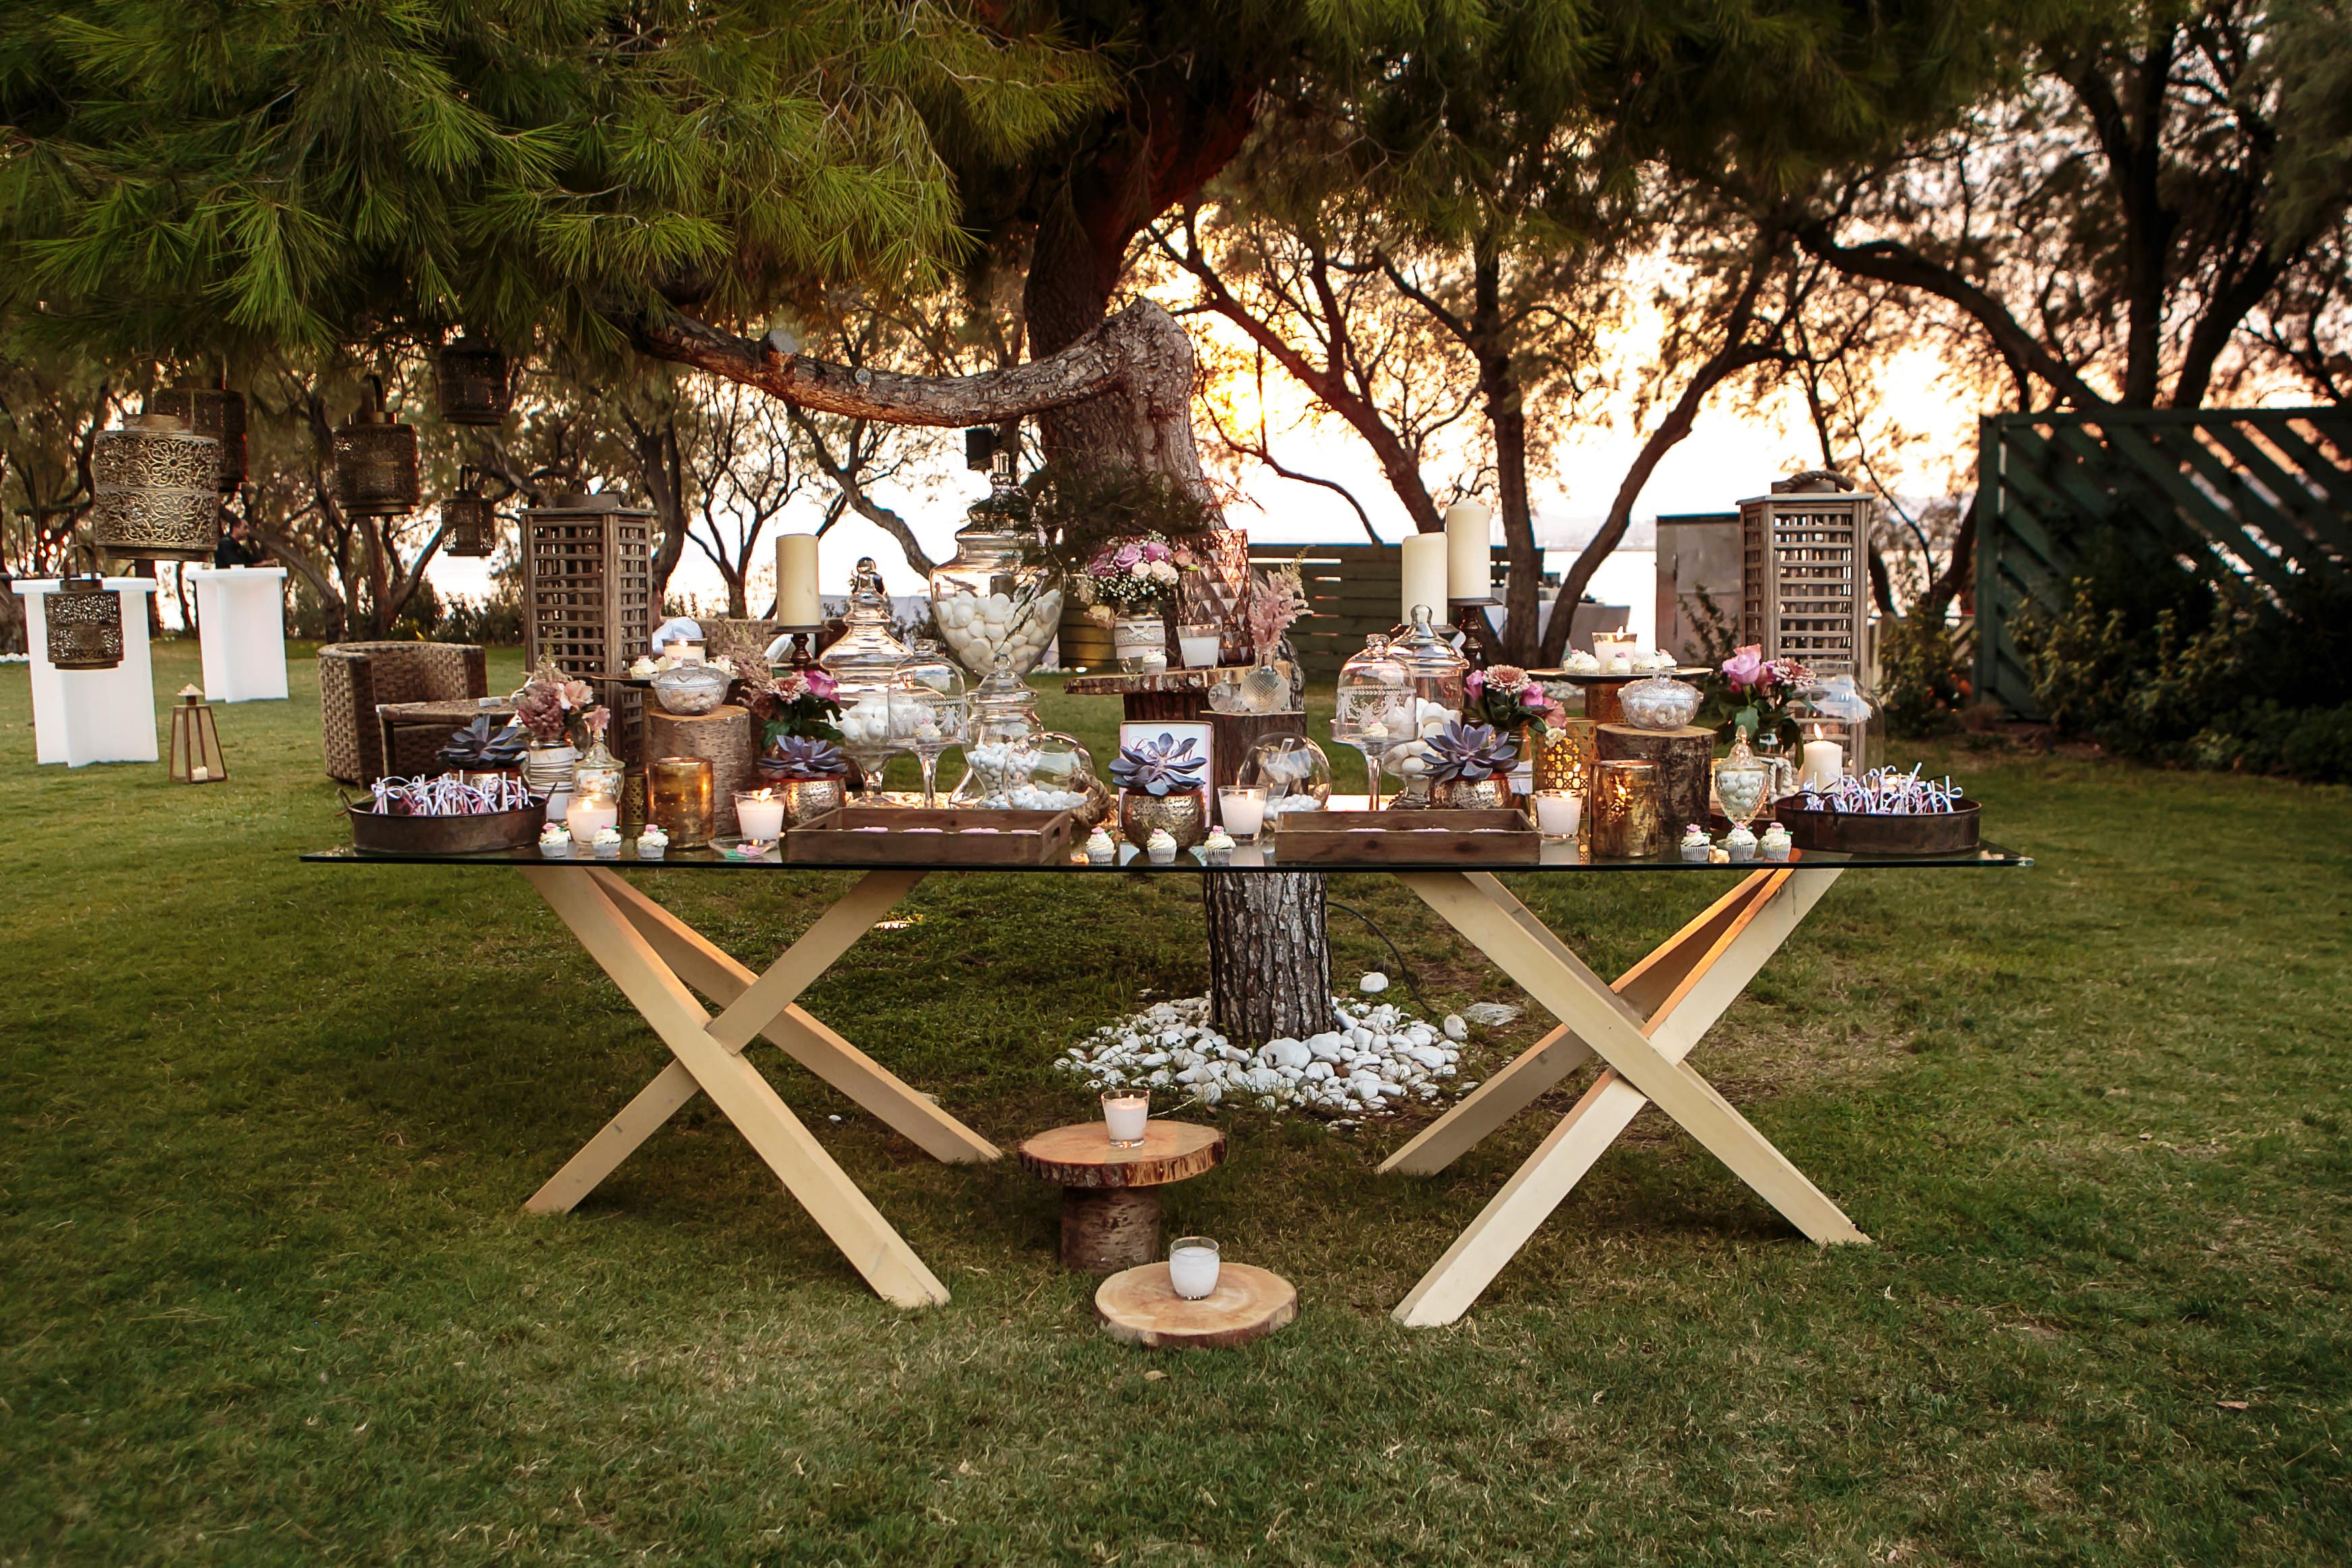 Romantic candy bar destination wedding on the Athens Riviera in Greece